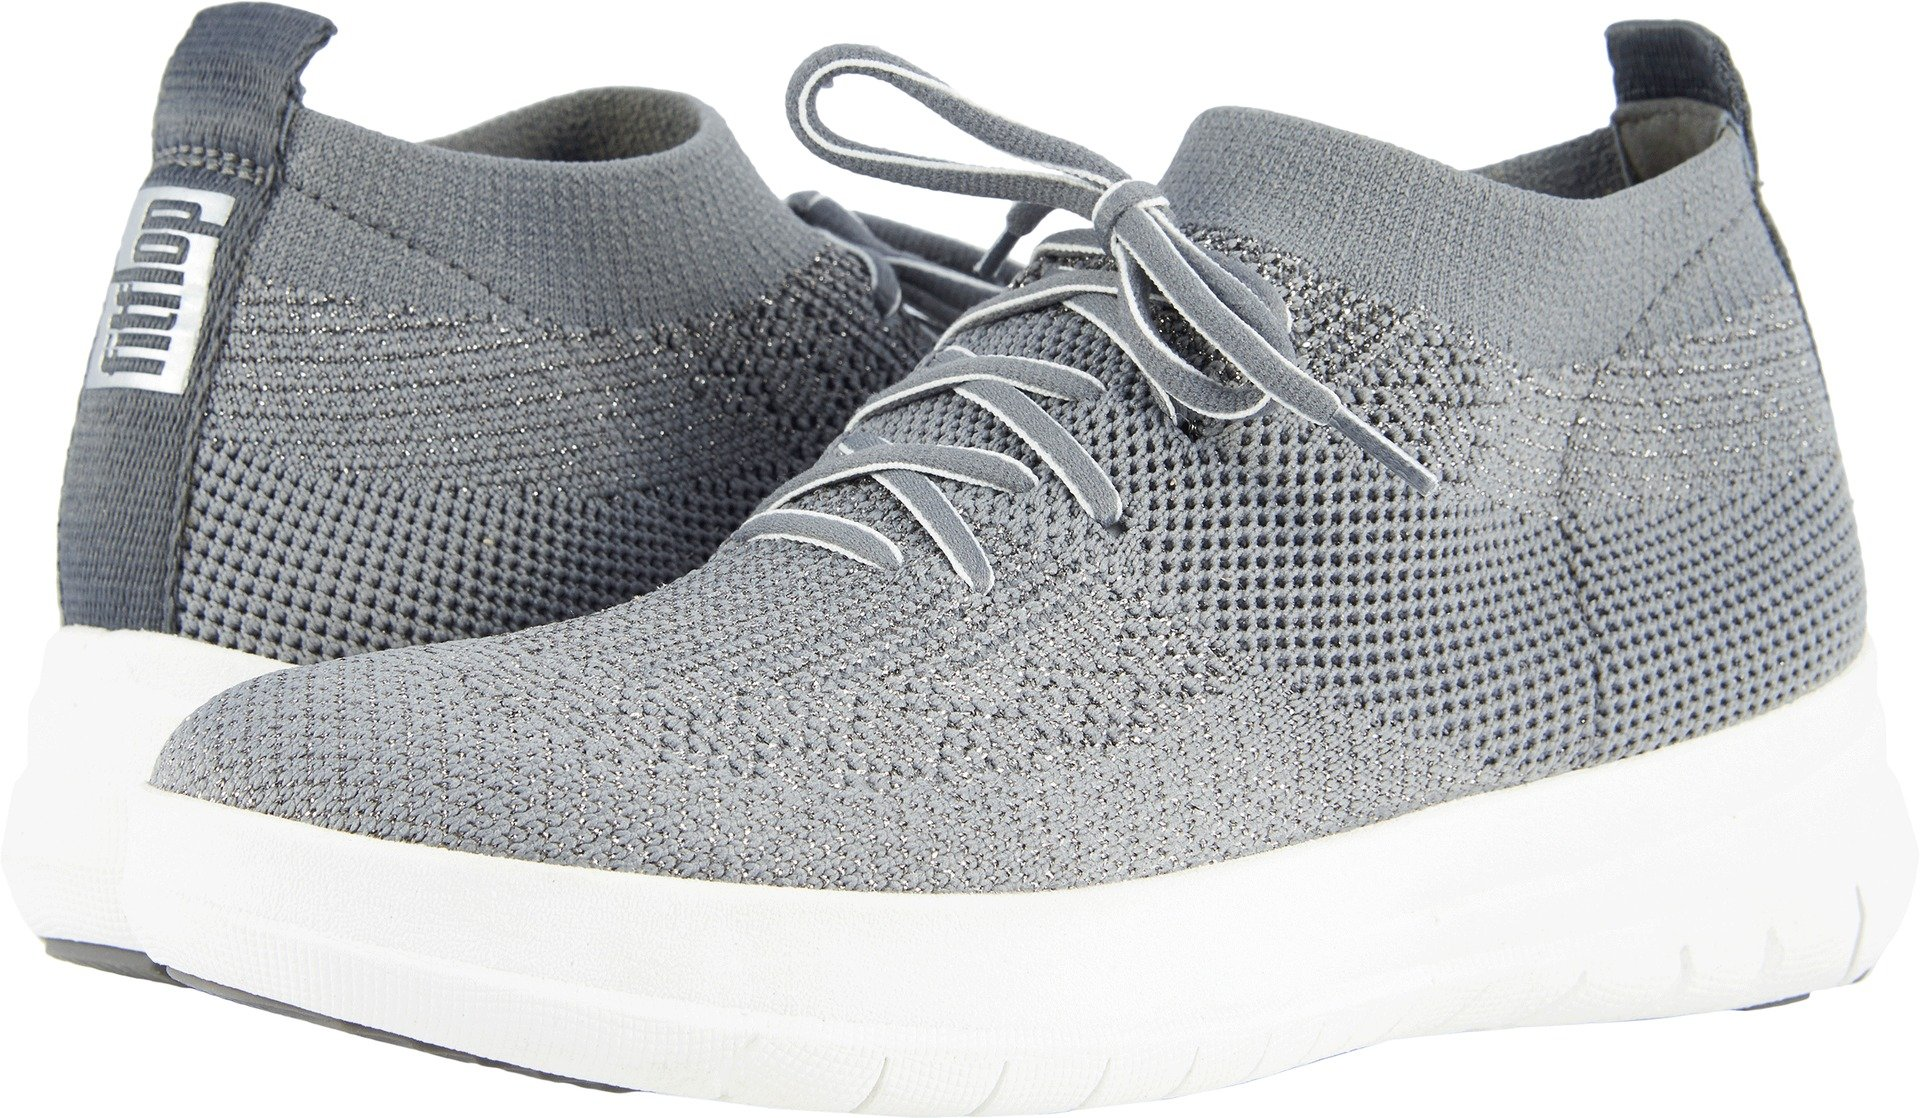 FitFlop Women's Uberknit Slip-On High-Top Sneaker Charcoal/Metallic Pewter 11 M US